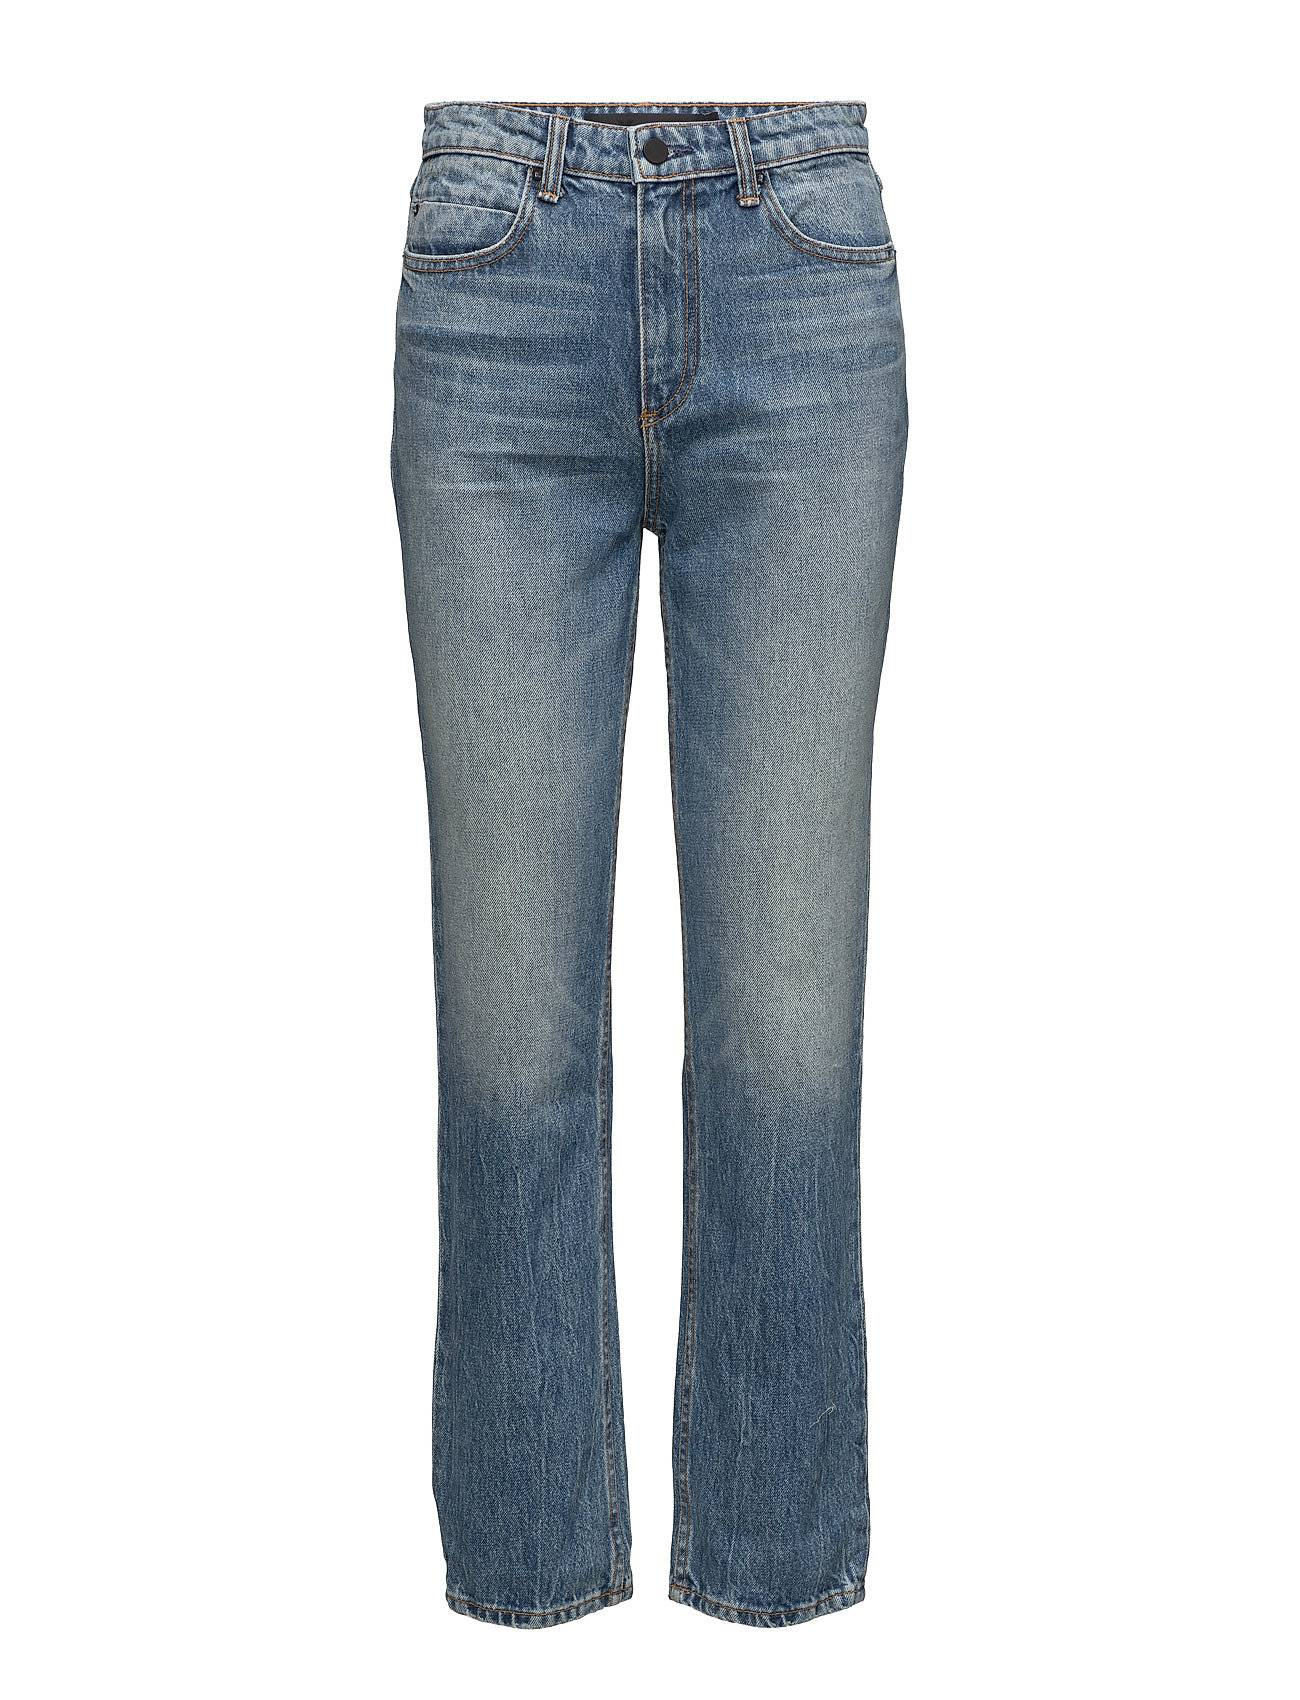 T by Alexander Wang Cult Cropped Straight Light Indigo Aged